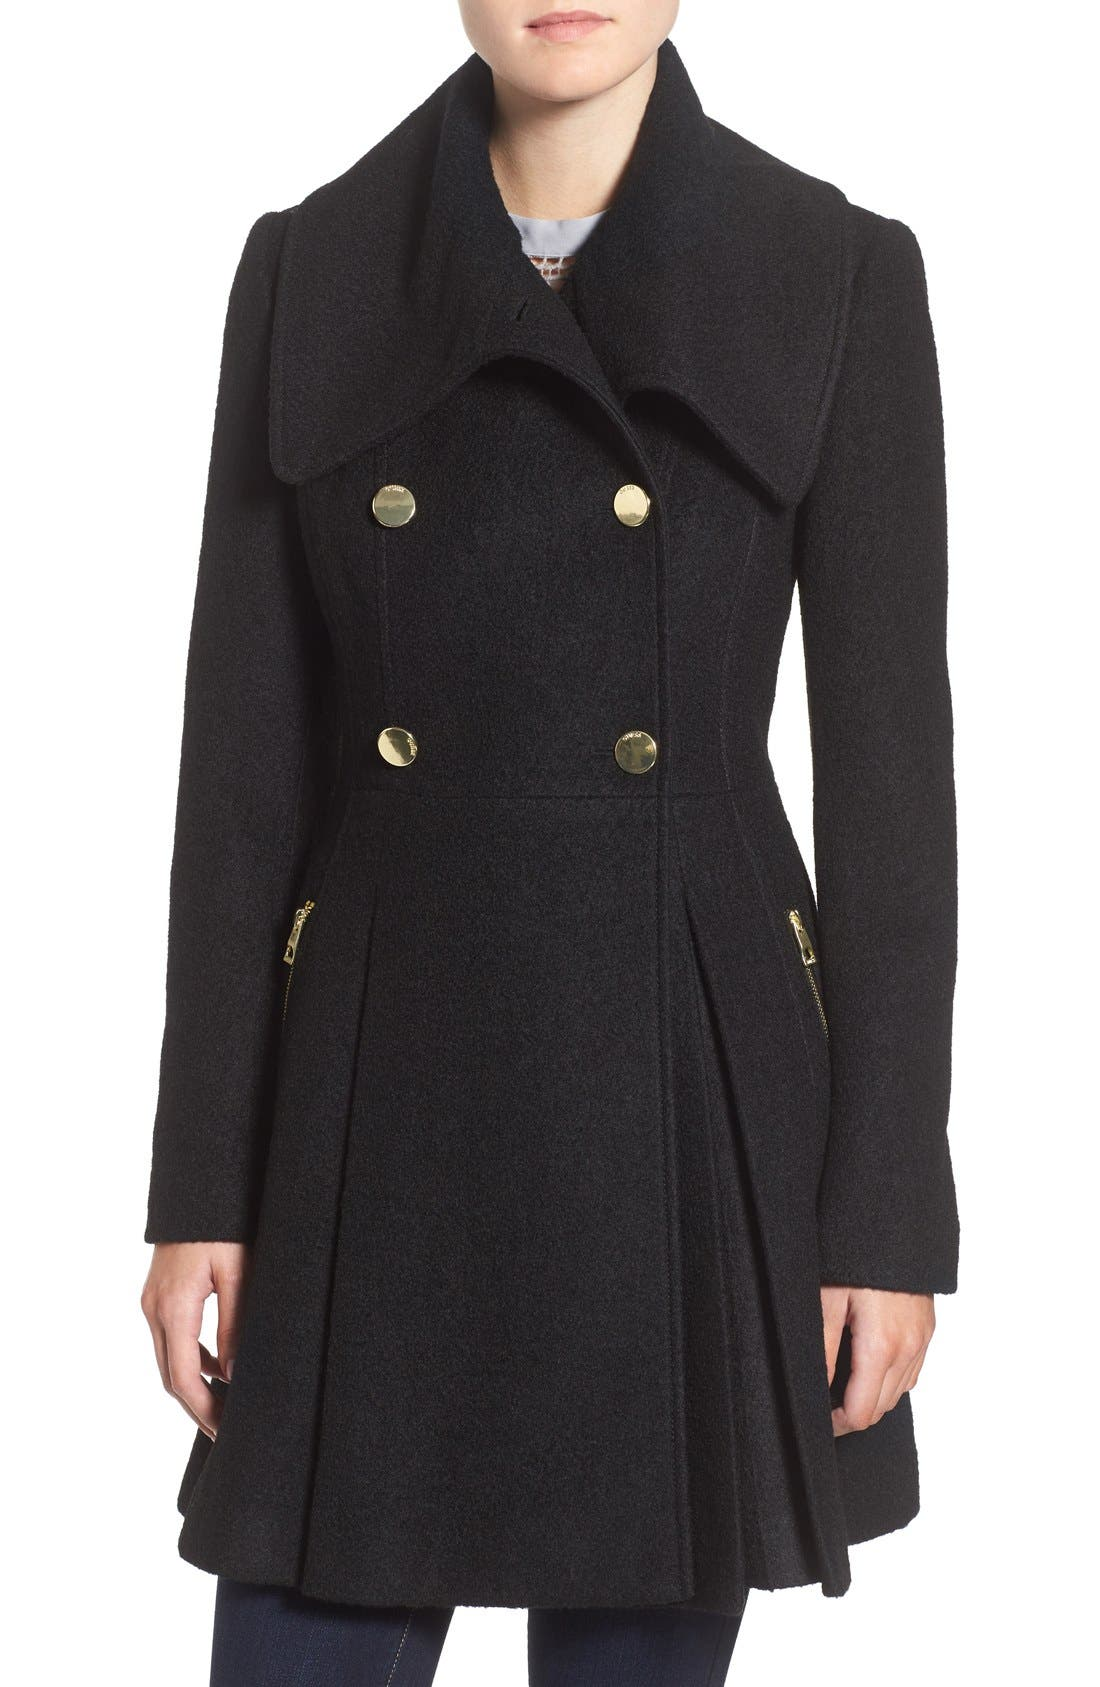 GUESS, Envelope Collar Double Breasted Coat, Main thumbnail 1, color, 001